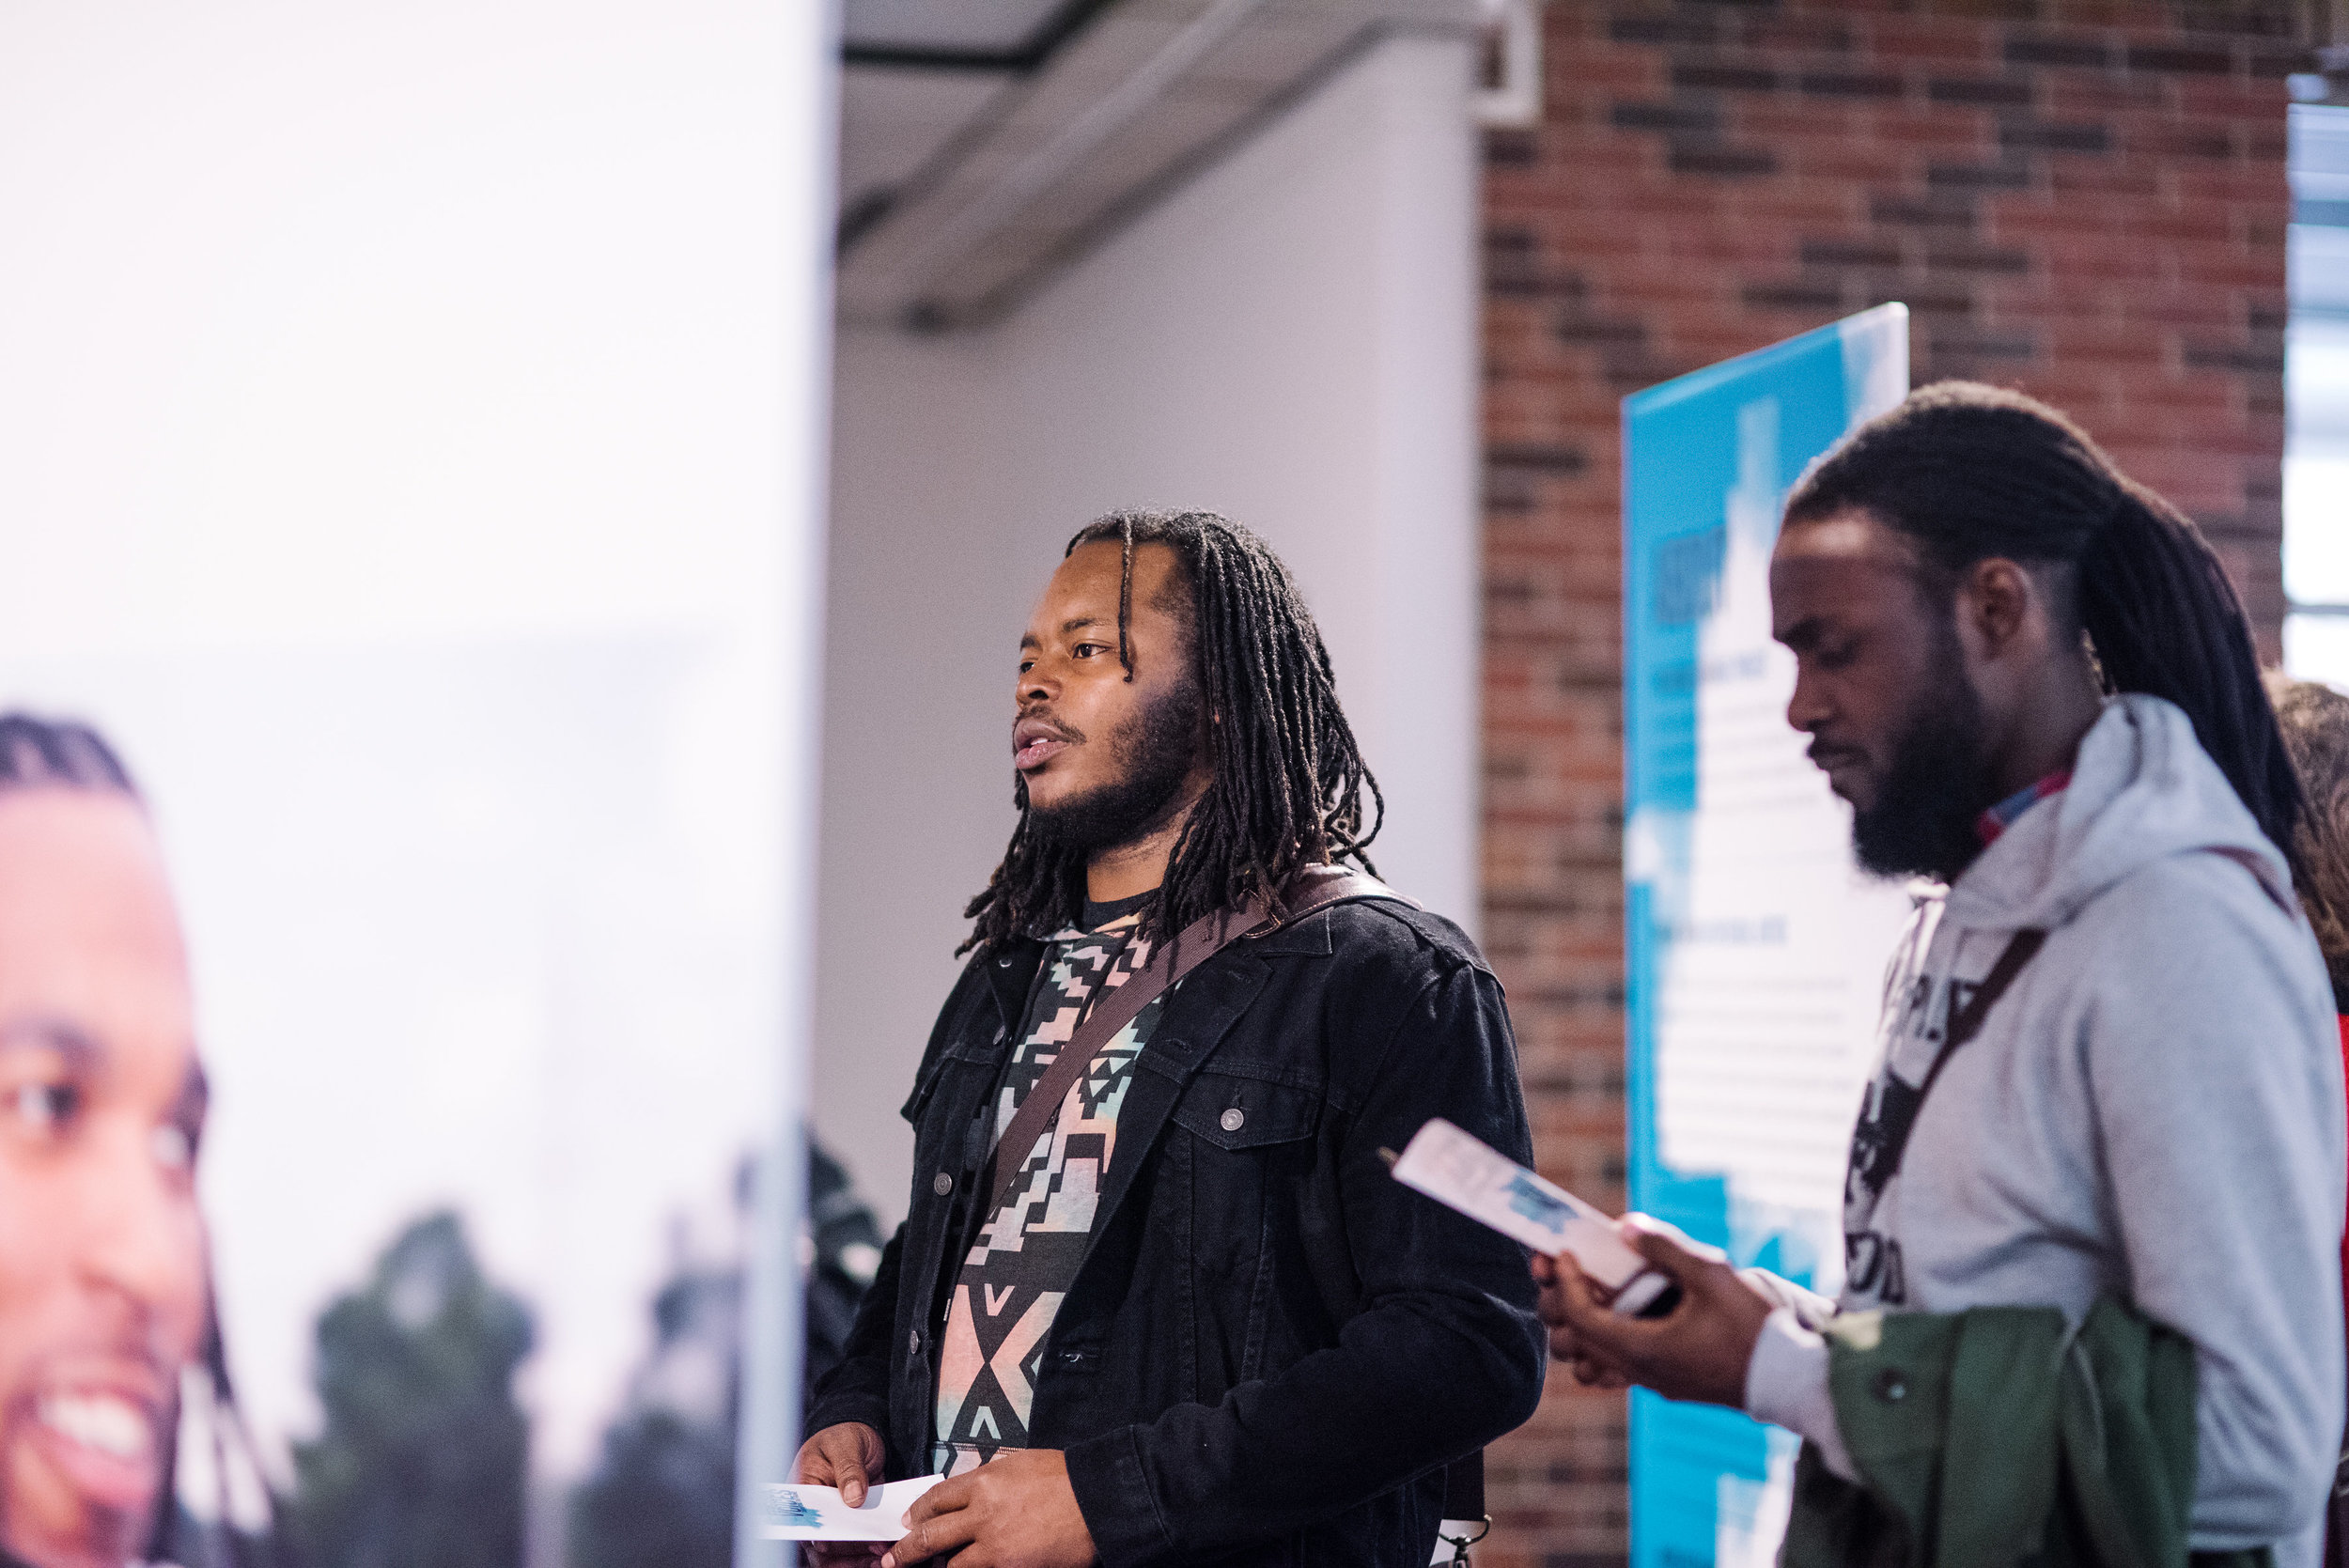 Launch of  Ferguson Voices: Disrupting the Frame  at The University of Dayton, January 2017, including image of Darren Seals (left)